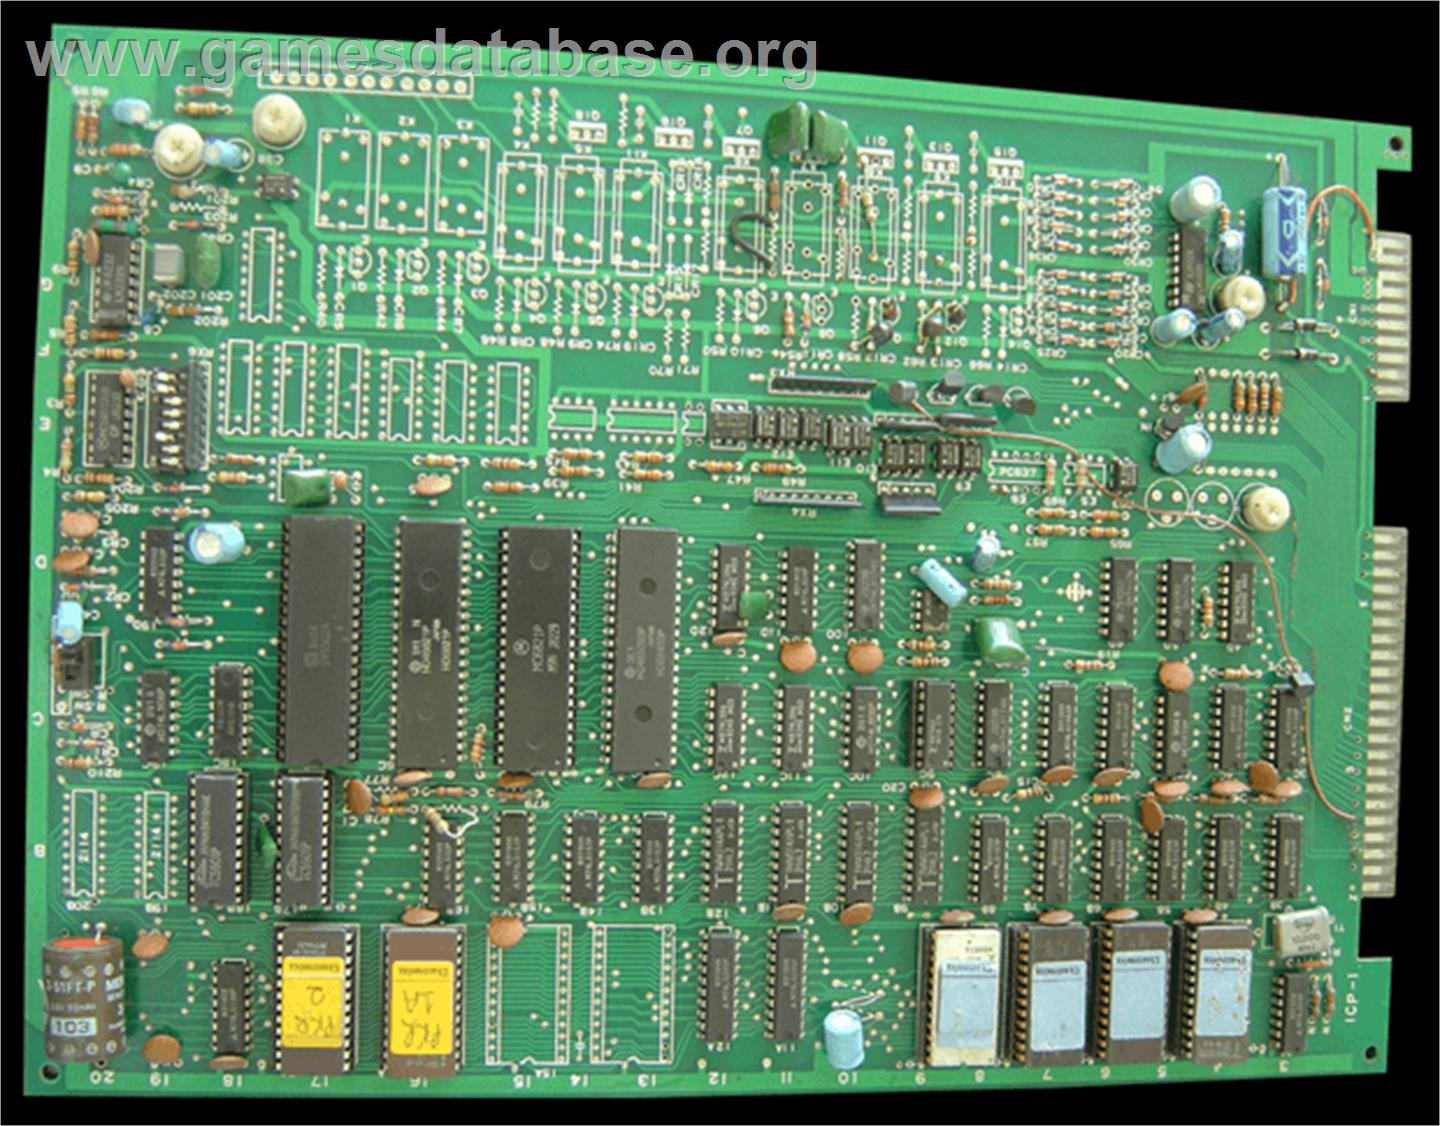 Poker Pcb Board Zynga Chips Hack Deutsch 2018 Hayward Goldline Aqualogic Main Printed Circuit Glxpcbmain It Is A Best Seller At Goodpcb Game Boards Please Note All Sales Must Get Pre Approval Pirate 2 Draw